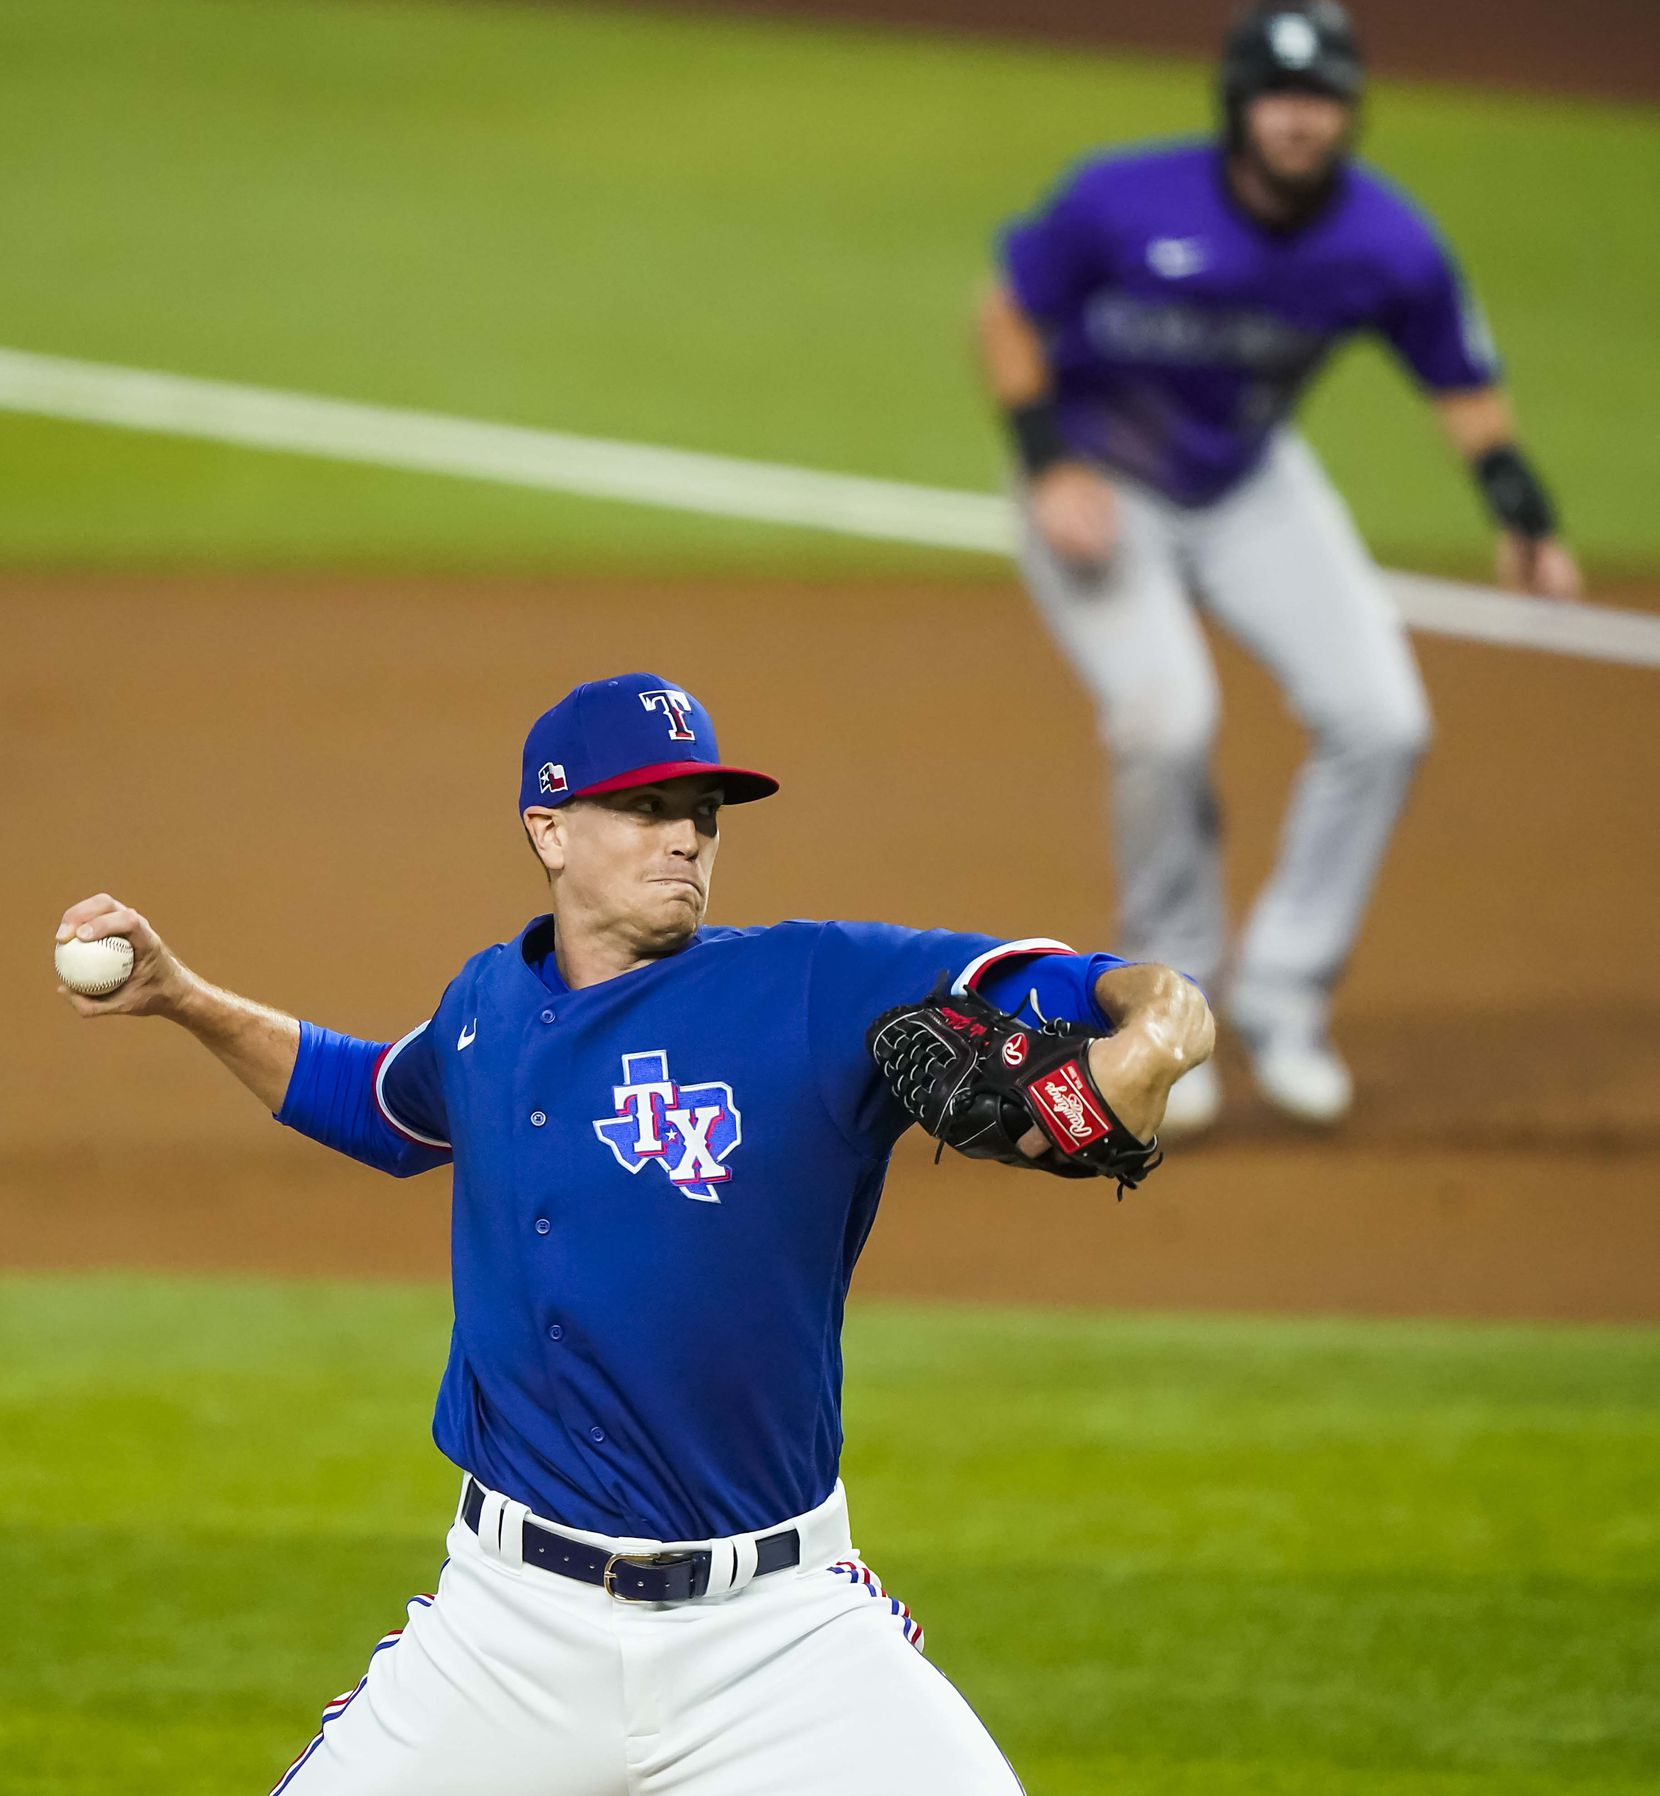 Texas Rangers pitcher Kyle Gibson pitches as Colorado Rockies outfielder David Dahl takes a lead off of first base during the first inning of at Globe Life Field on Tuesday, July 21, 2020.